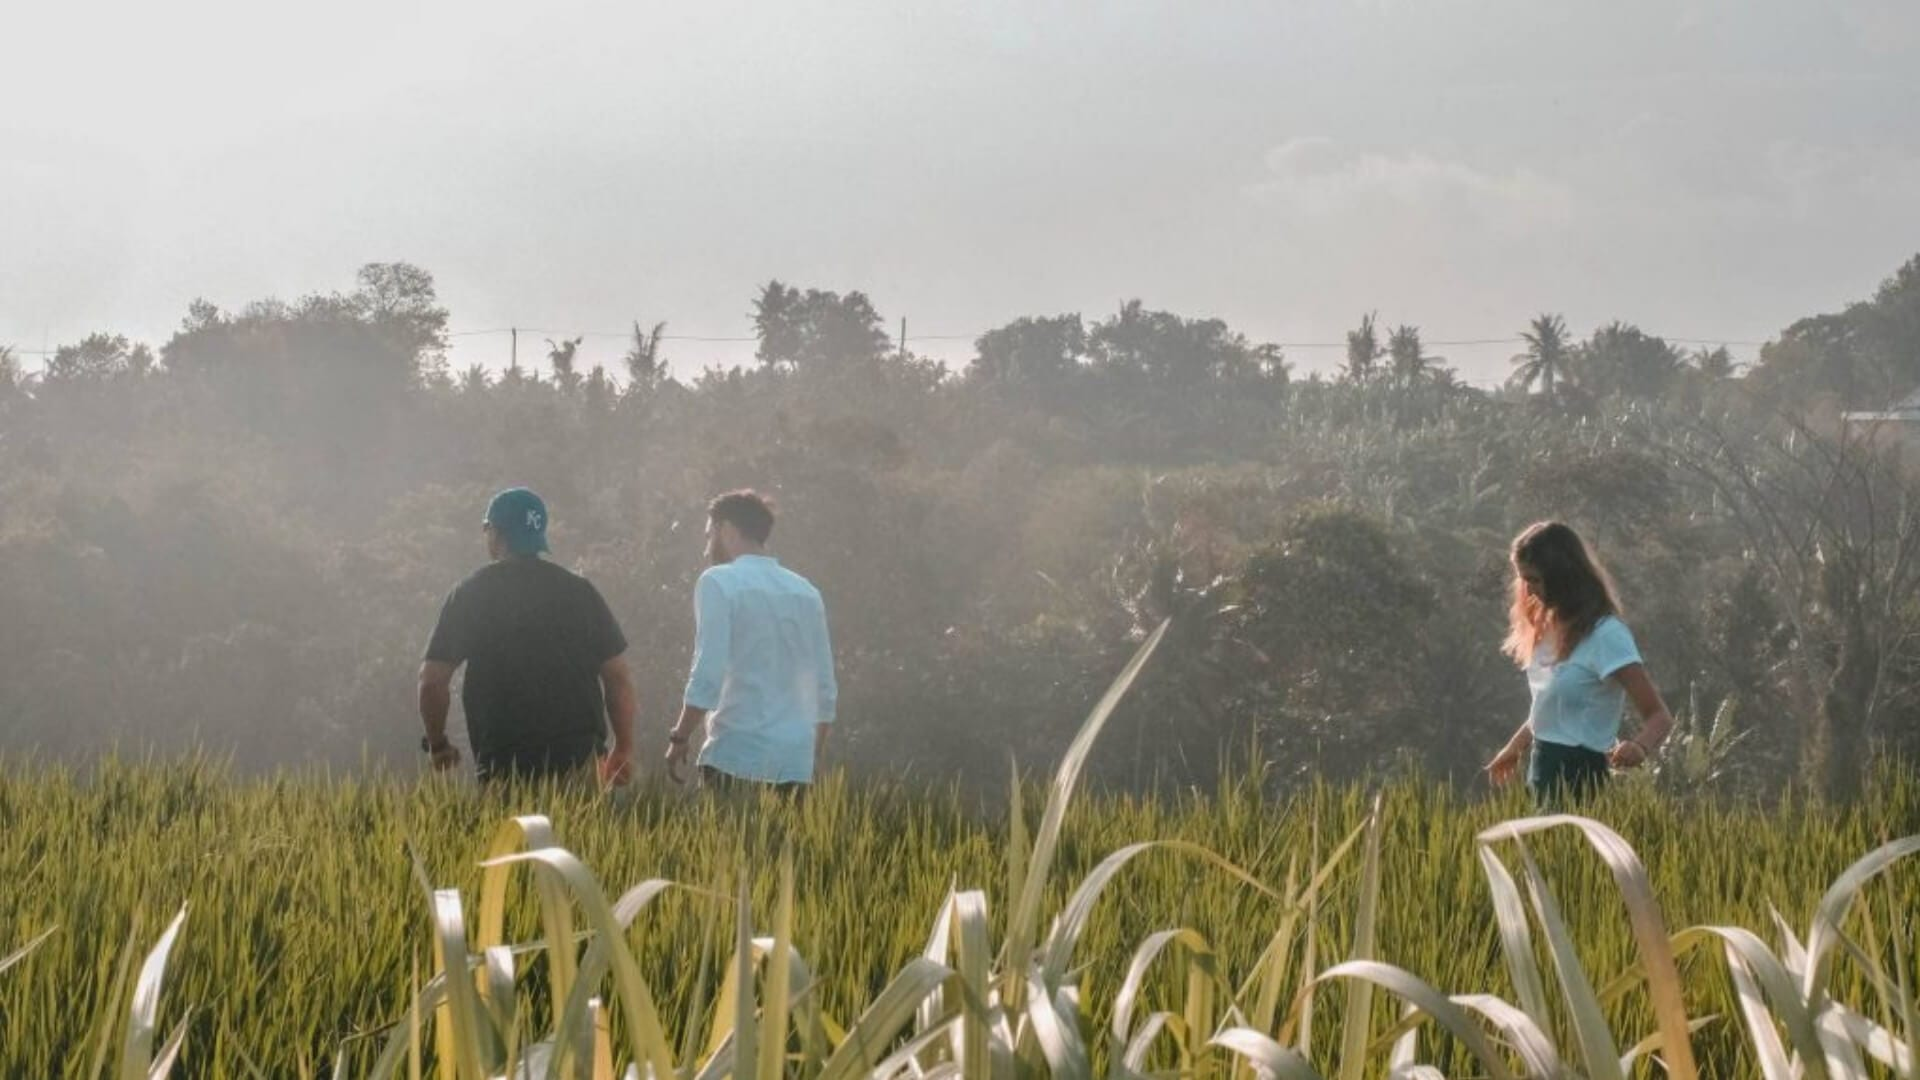 Three students are walking in a ricefield in Indonesia.